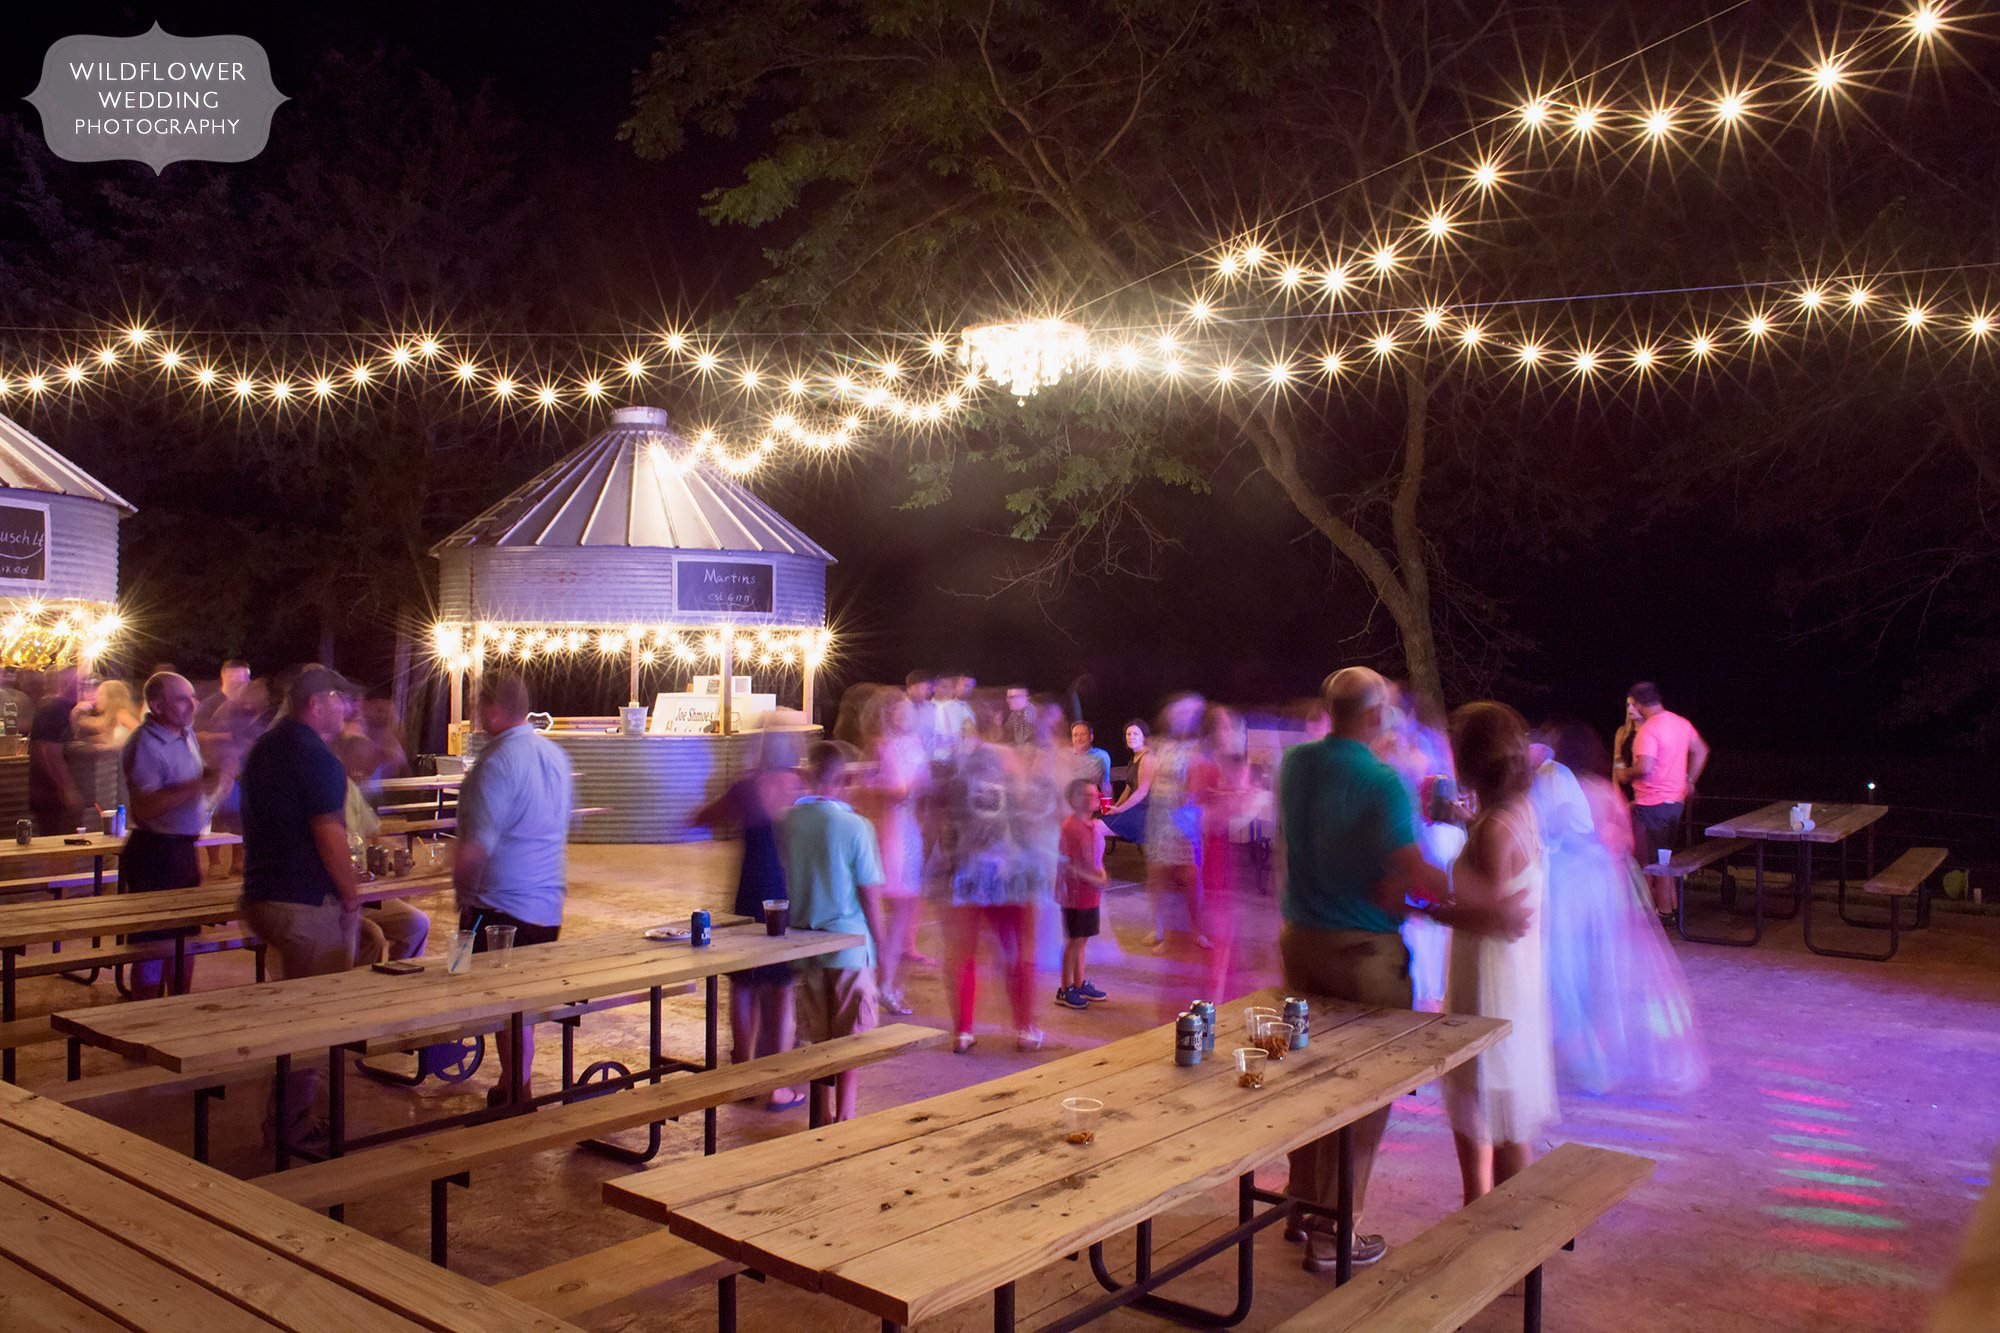 Outdoor dance floor at this country barn wedding venue in southern MO at Kempker's Back 40 barn.